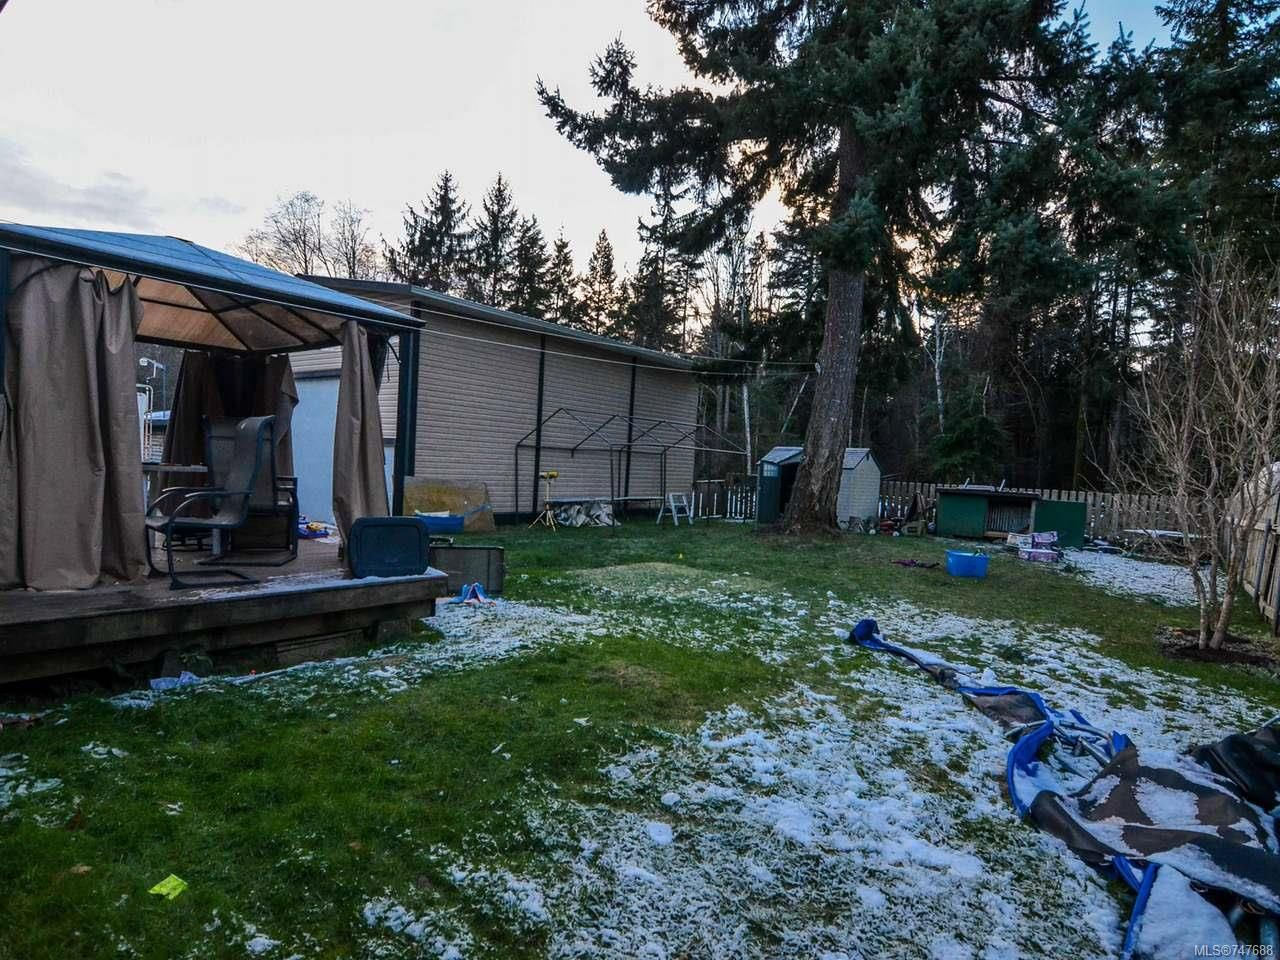 Photo 15: Photos: 228 Crawford Rd in CAMPBELL RIVER: CR Campbell River South House for sale (Campbell River)  : MLS®# 747688